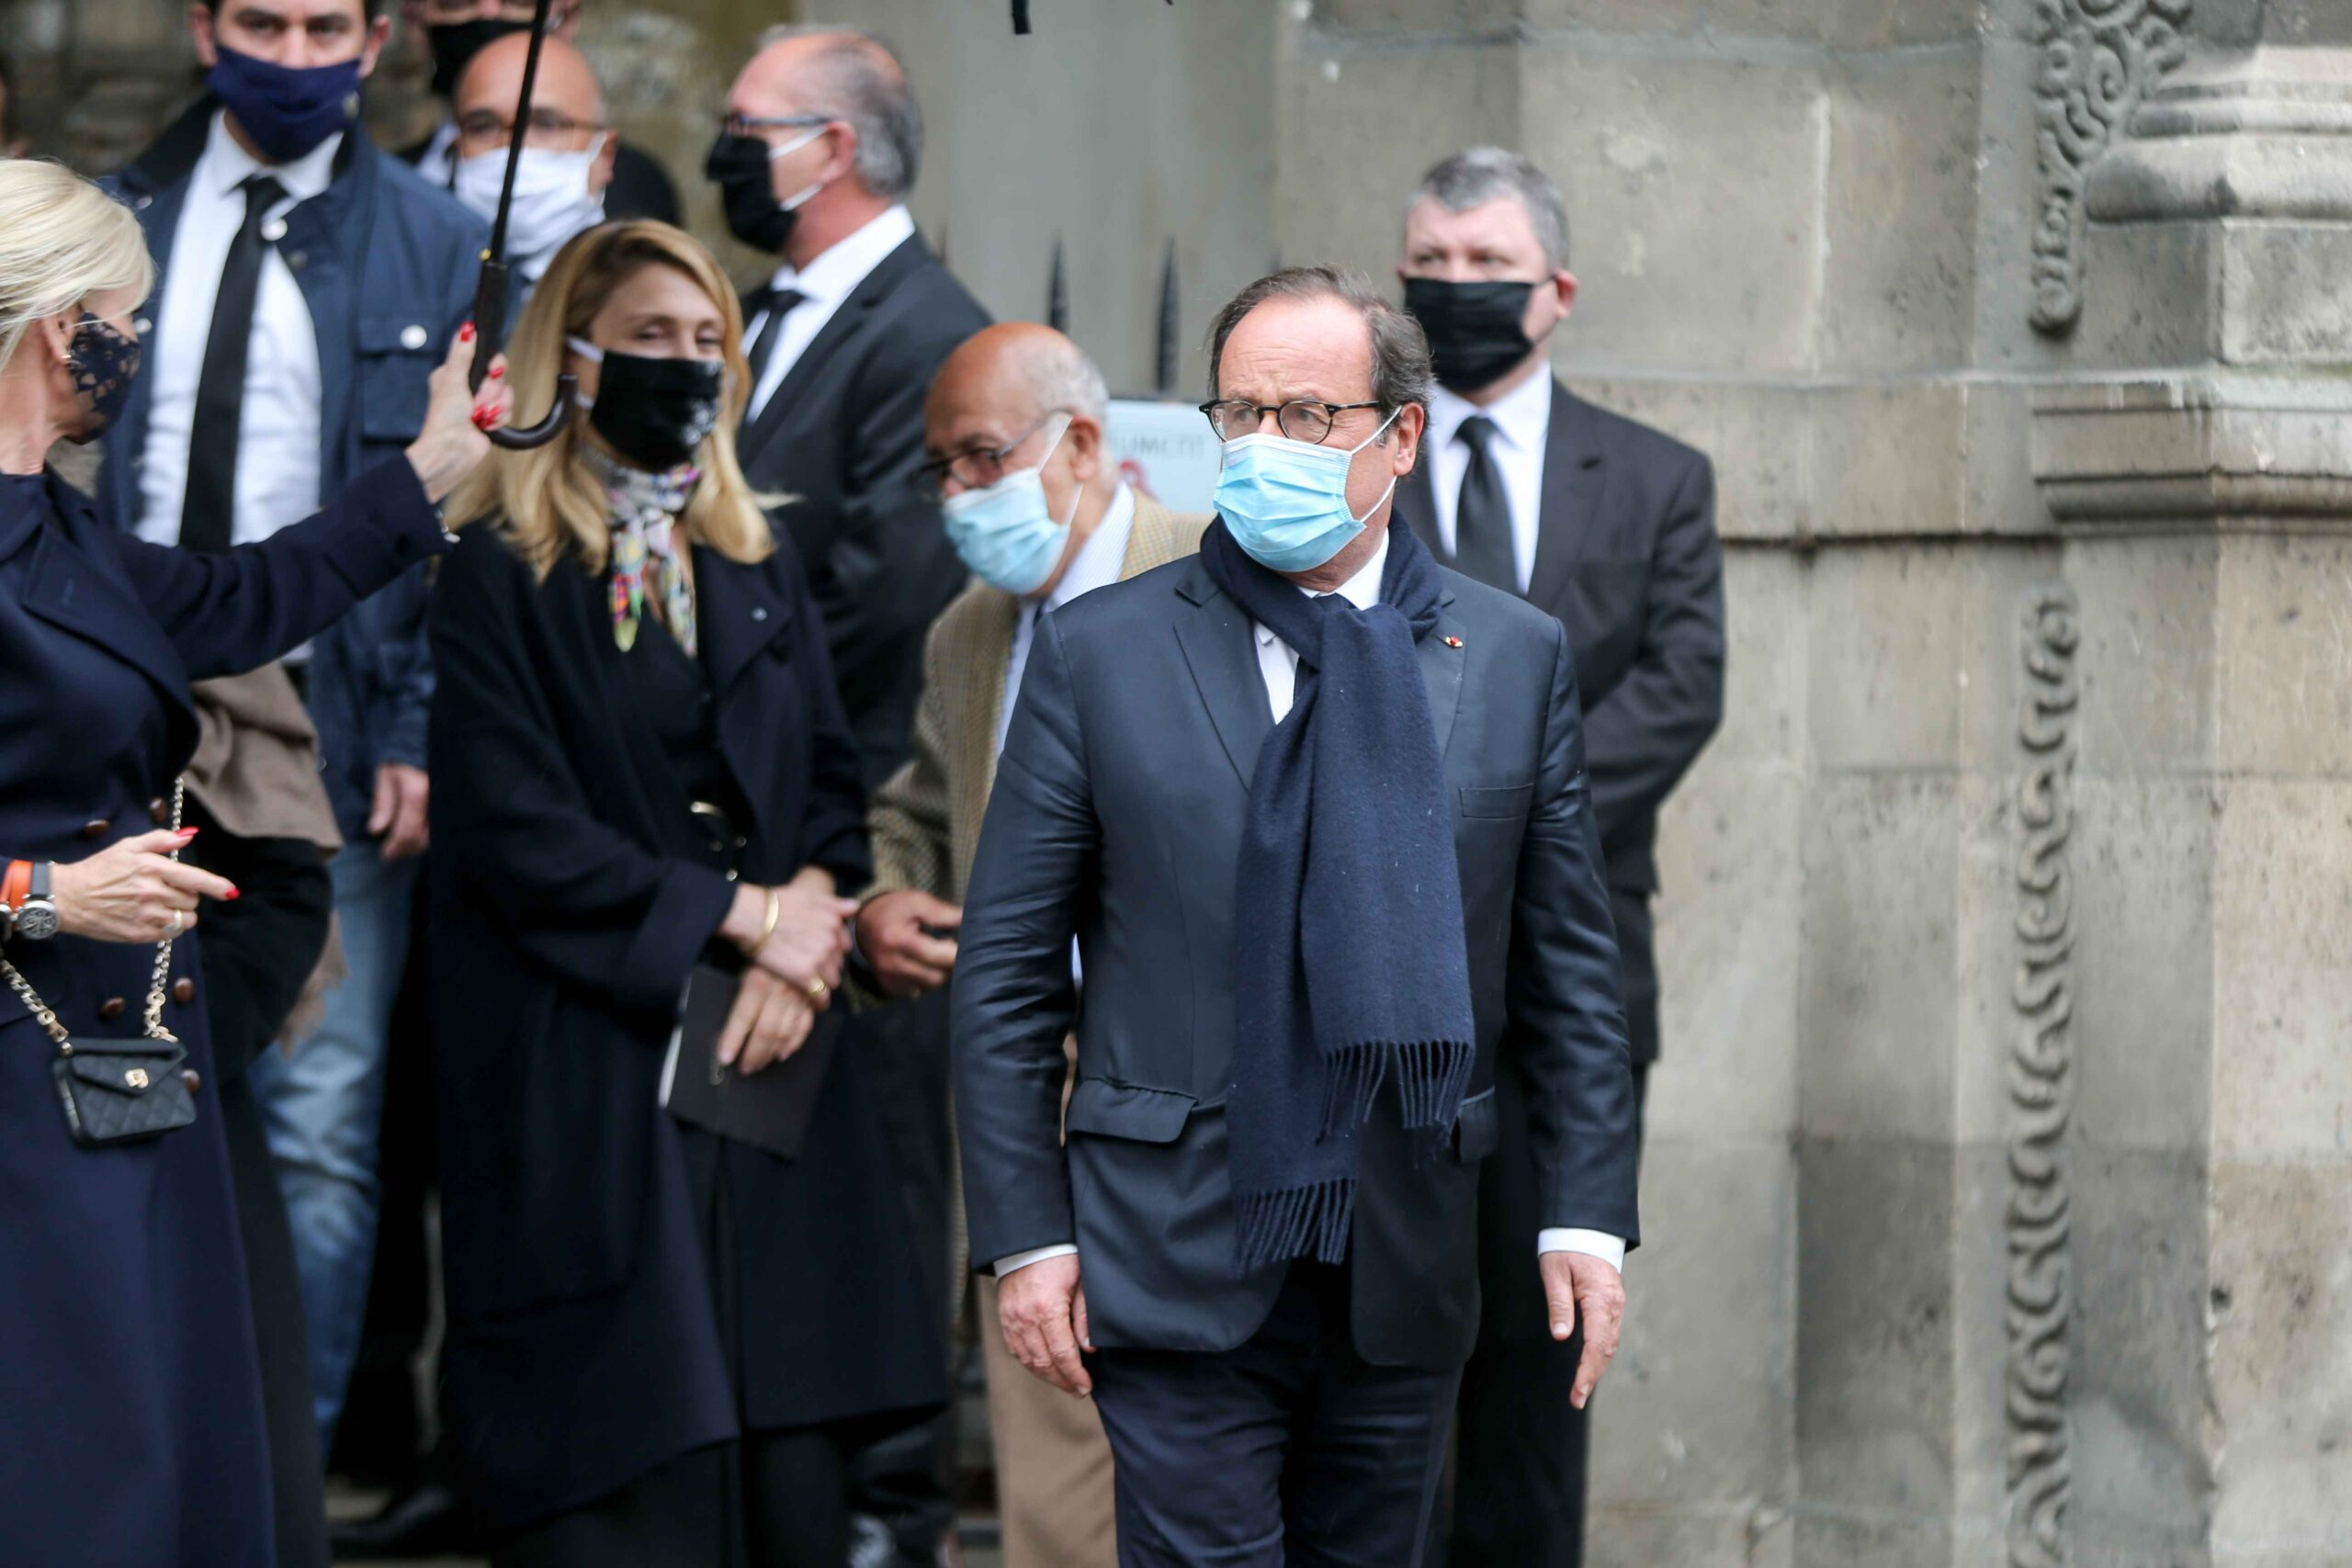 Former French President Francois Hollande (2R) and his partner French actress Julie Gayet (5R) leave after attending the funerals of French singer Juliette Greco, at the Saint-Germain-des-Pres church in Paris, on October 5, 2020. Legendary French singer Ju